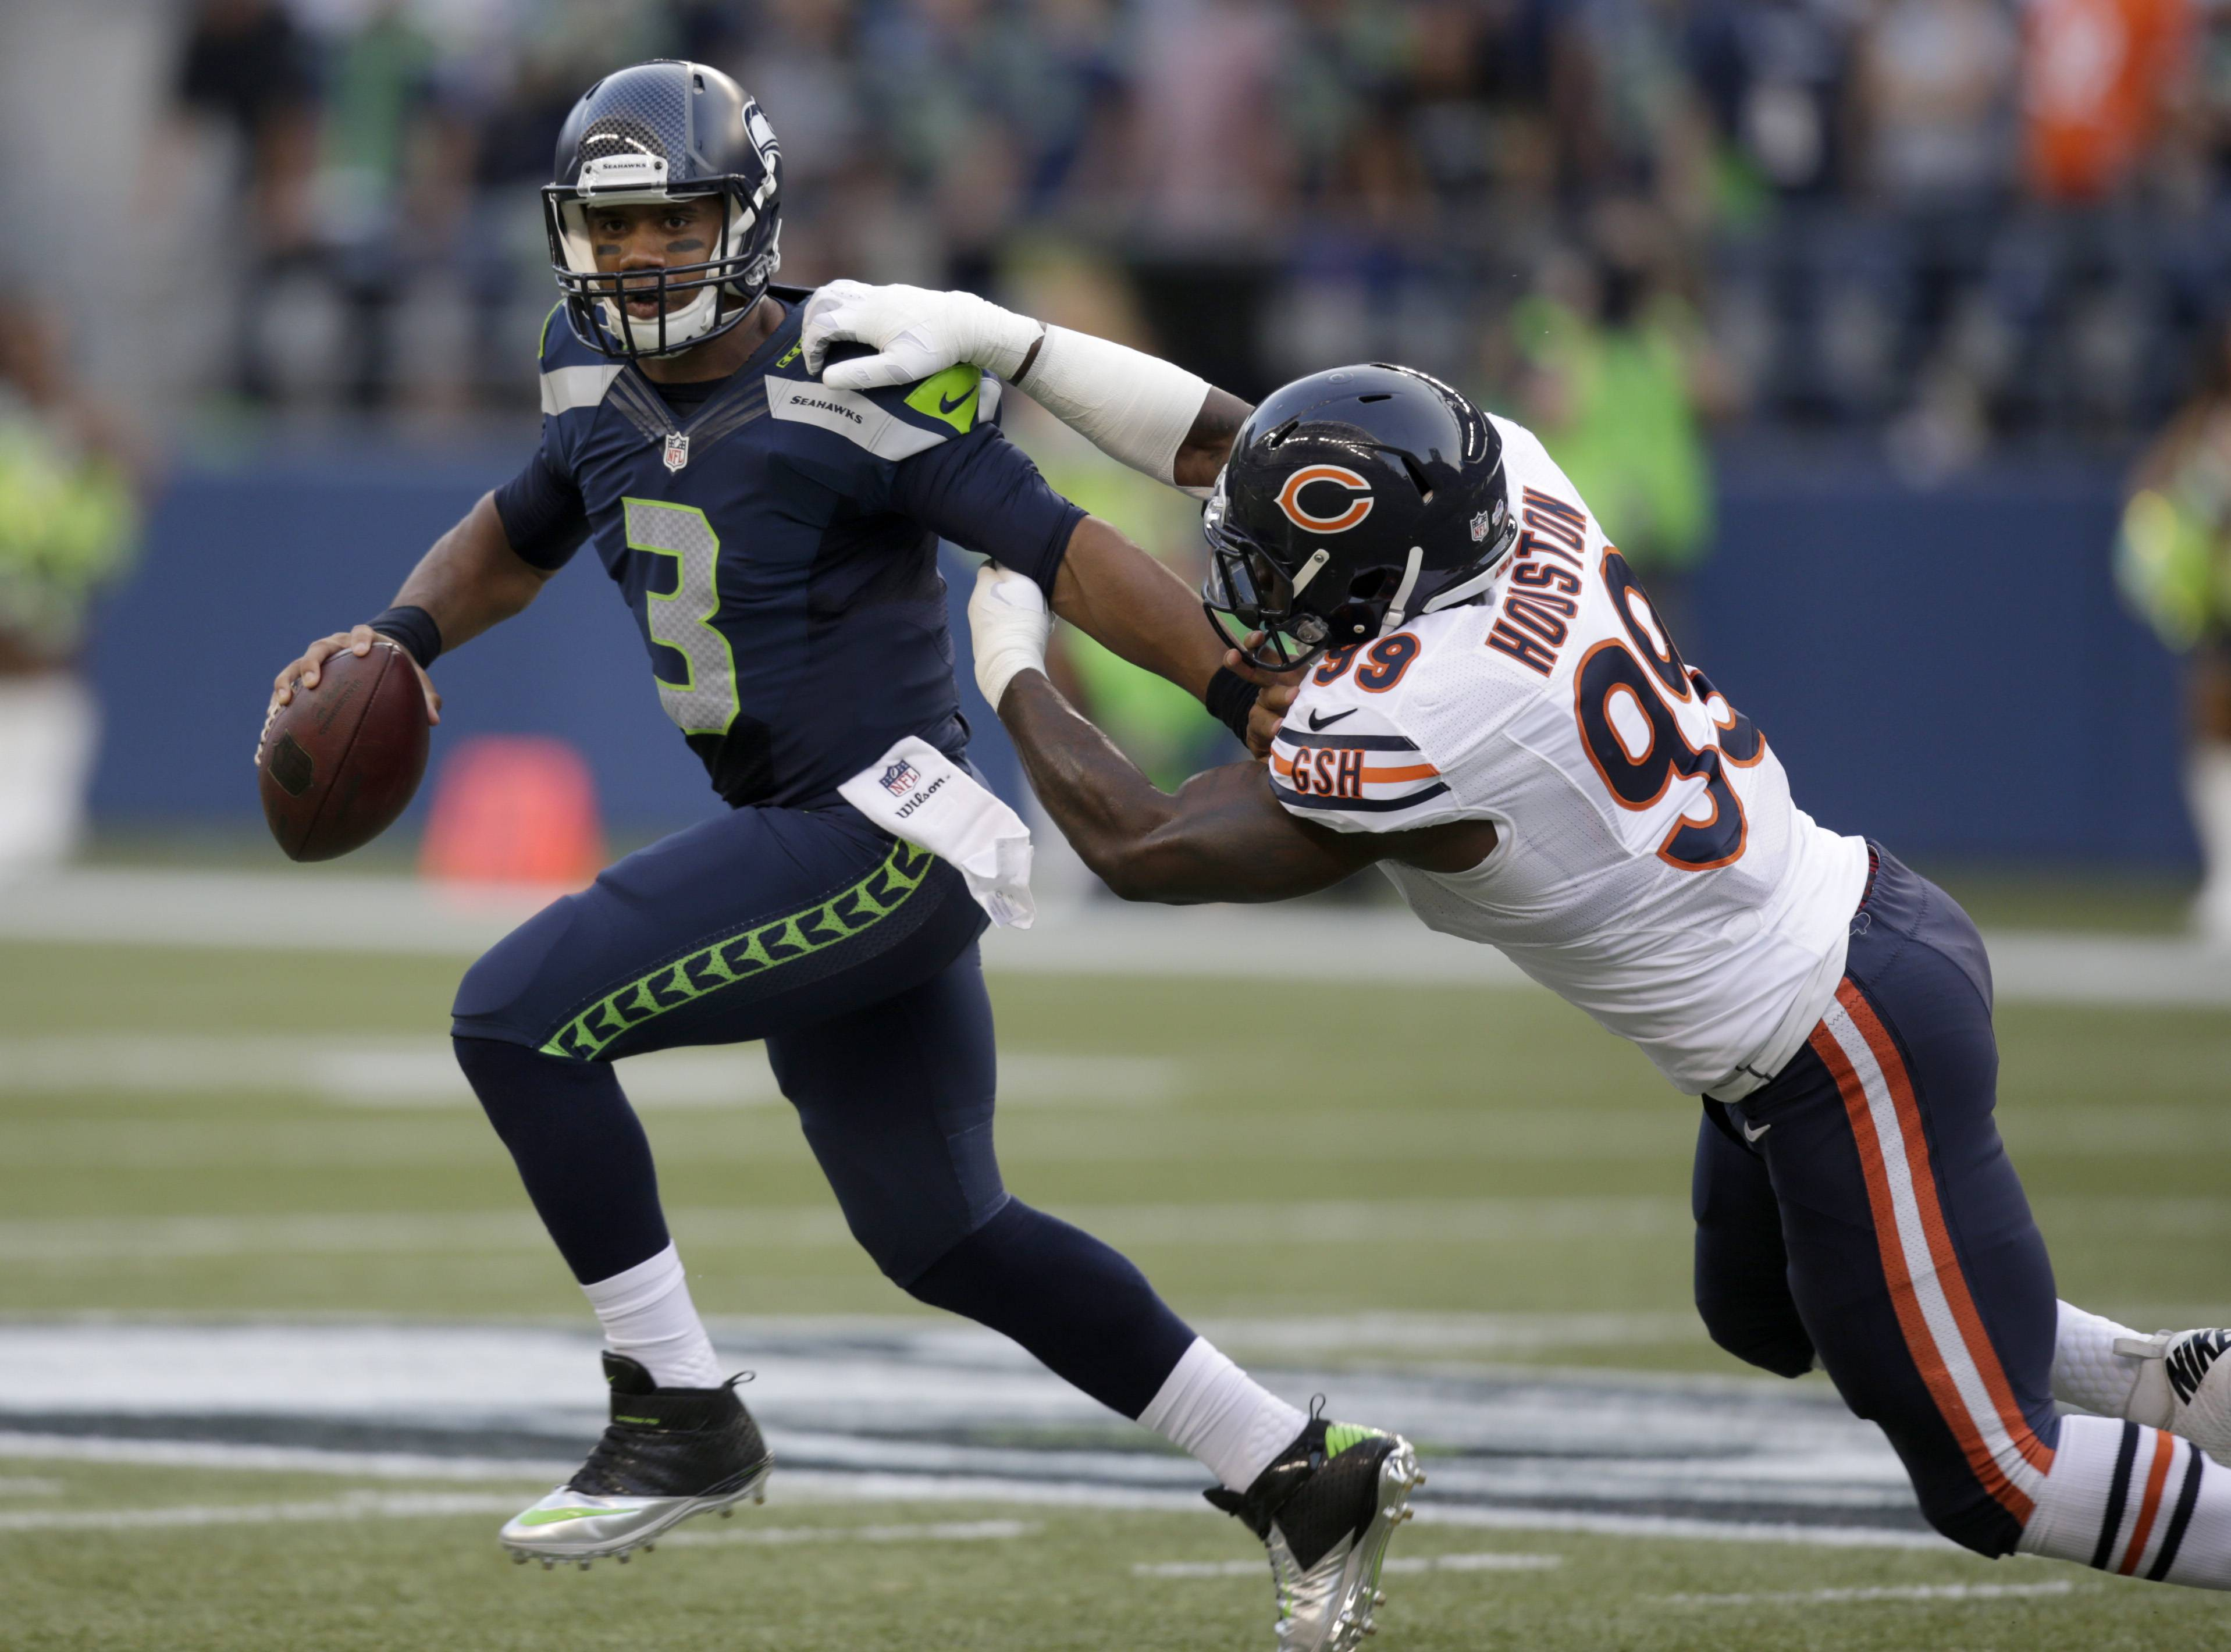 Seattle Seahawks quarterback Russell Wilson (3) tries to escape the grasp of Chicago Bears defensive end Lamarr Houston. The defensive unit was able to pressure Wilson, but it only sacked him once in Friday night's 34-6 loss to Seattle.